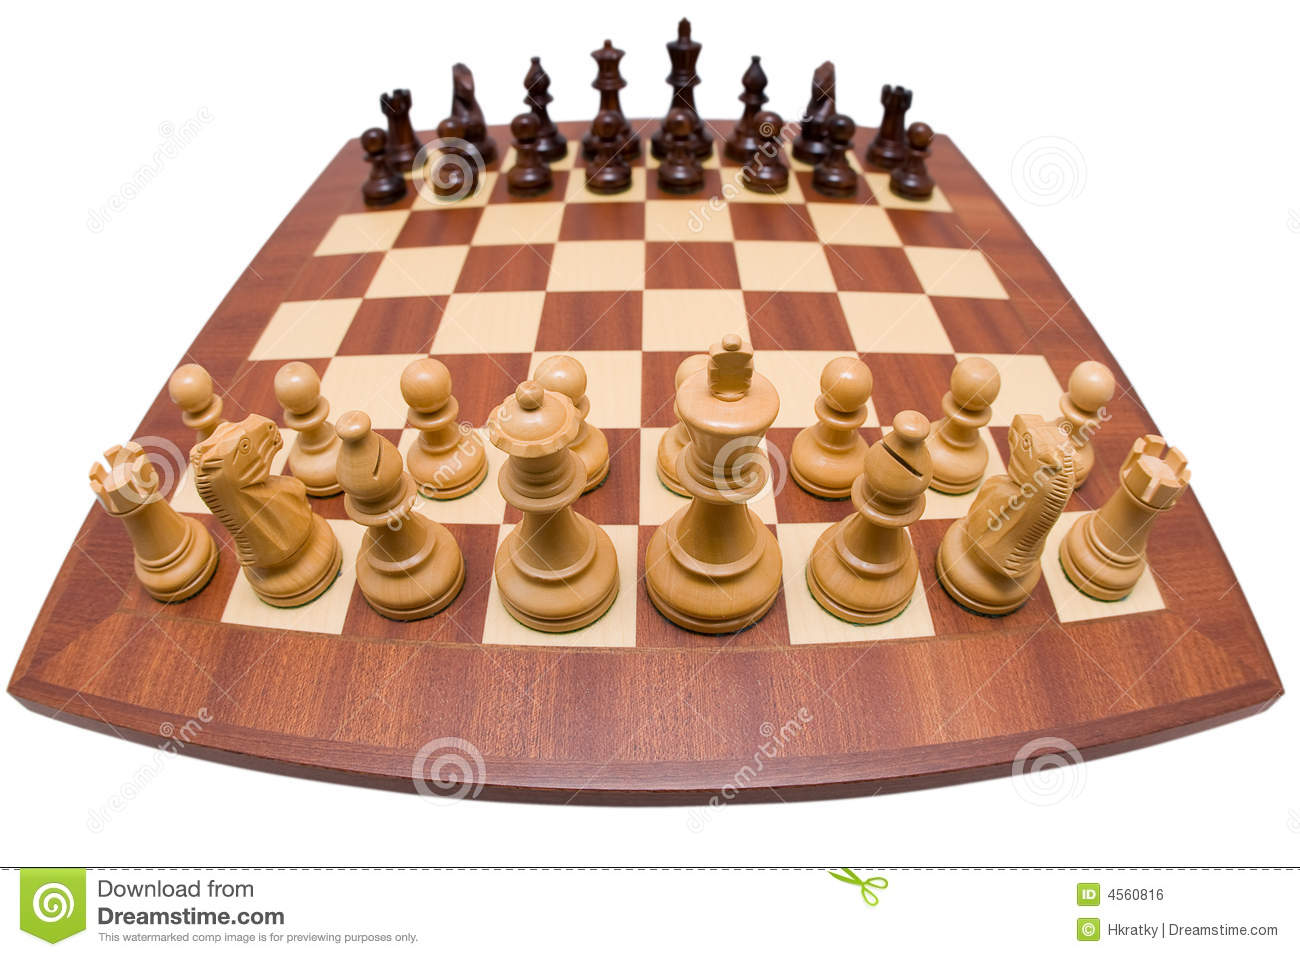 Chess pieces royalty free stock image image 4560816 - Simple chess set ...